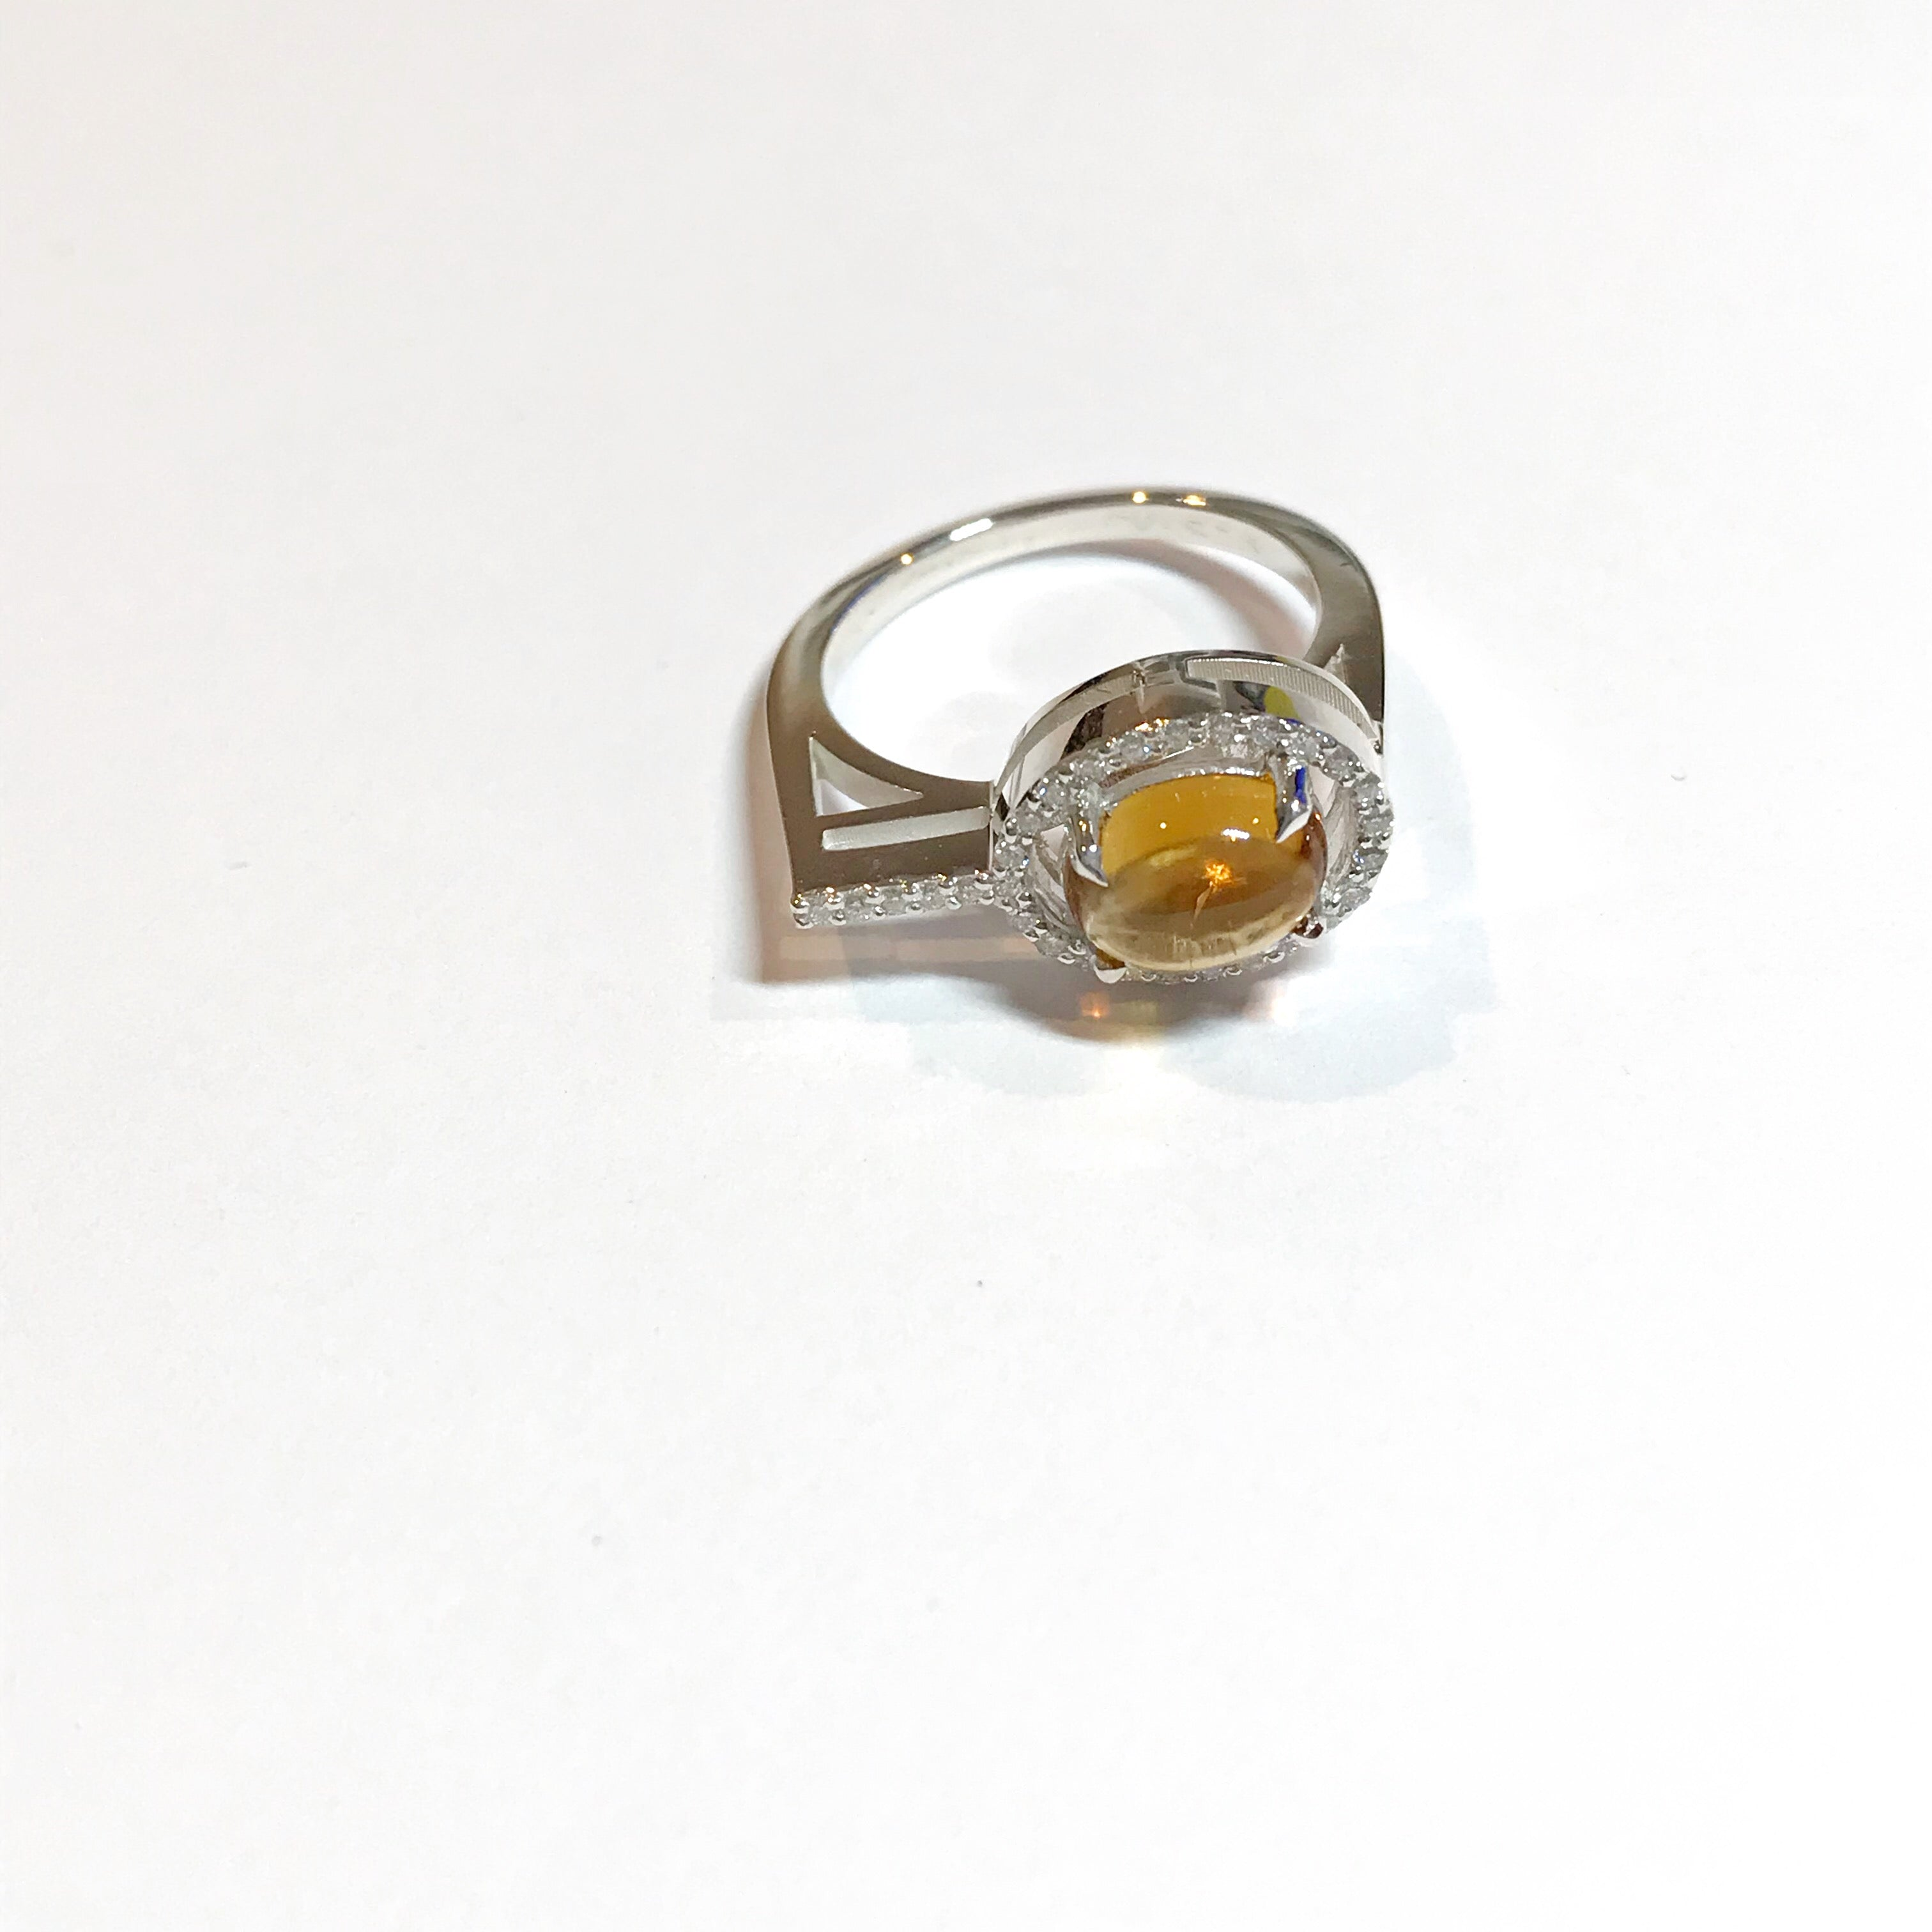 Irini gem drop white diamond and cabachon ring , made in nyc, citrine  stones